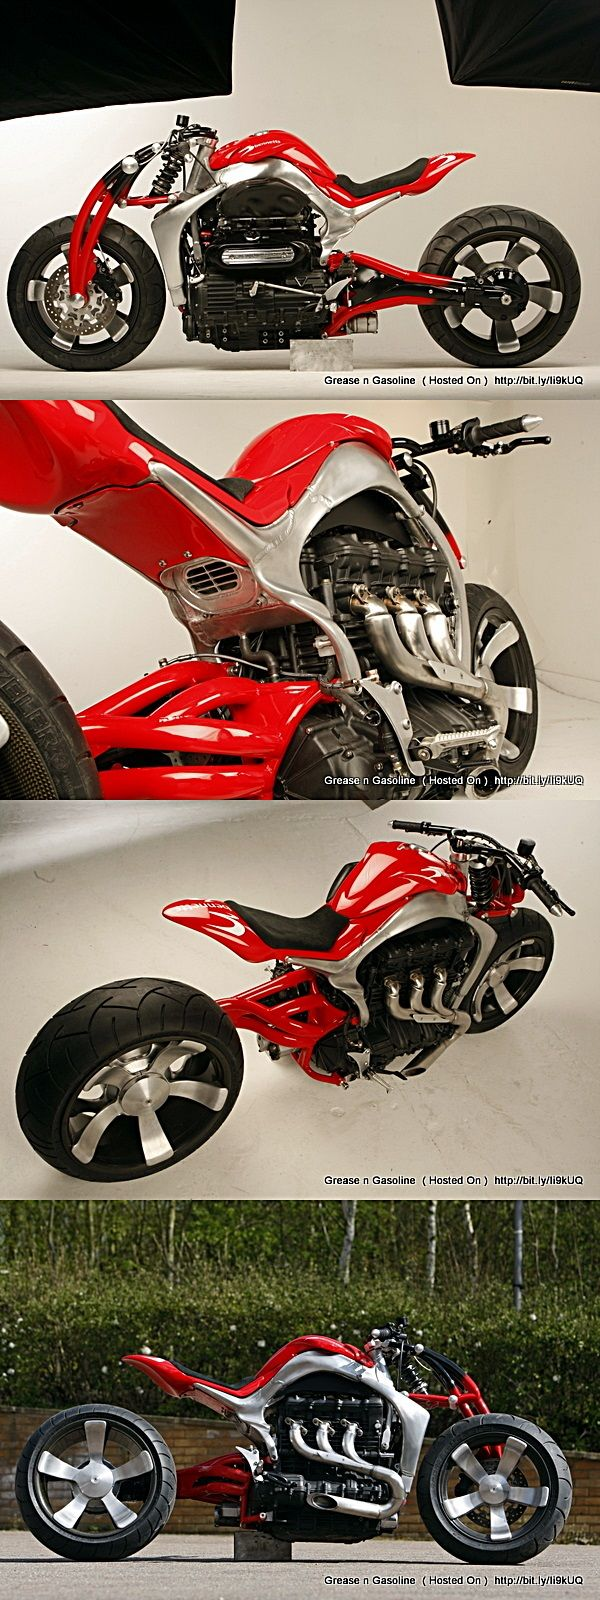 Triumph Rocket III Concept Motorcycle - Roger Allmond | repinned by…